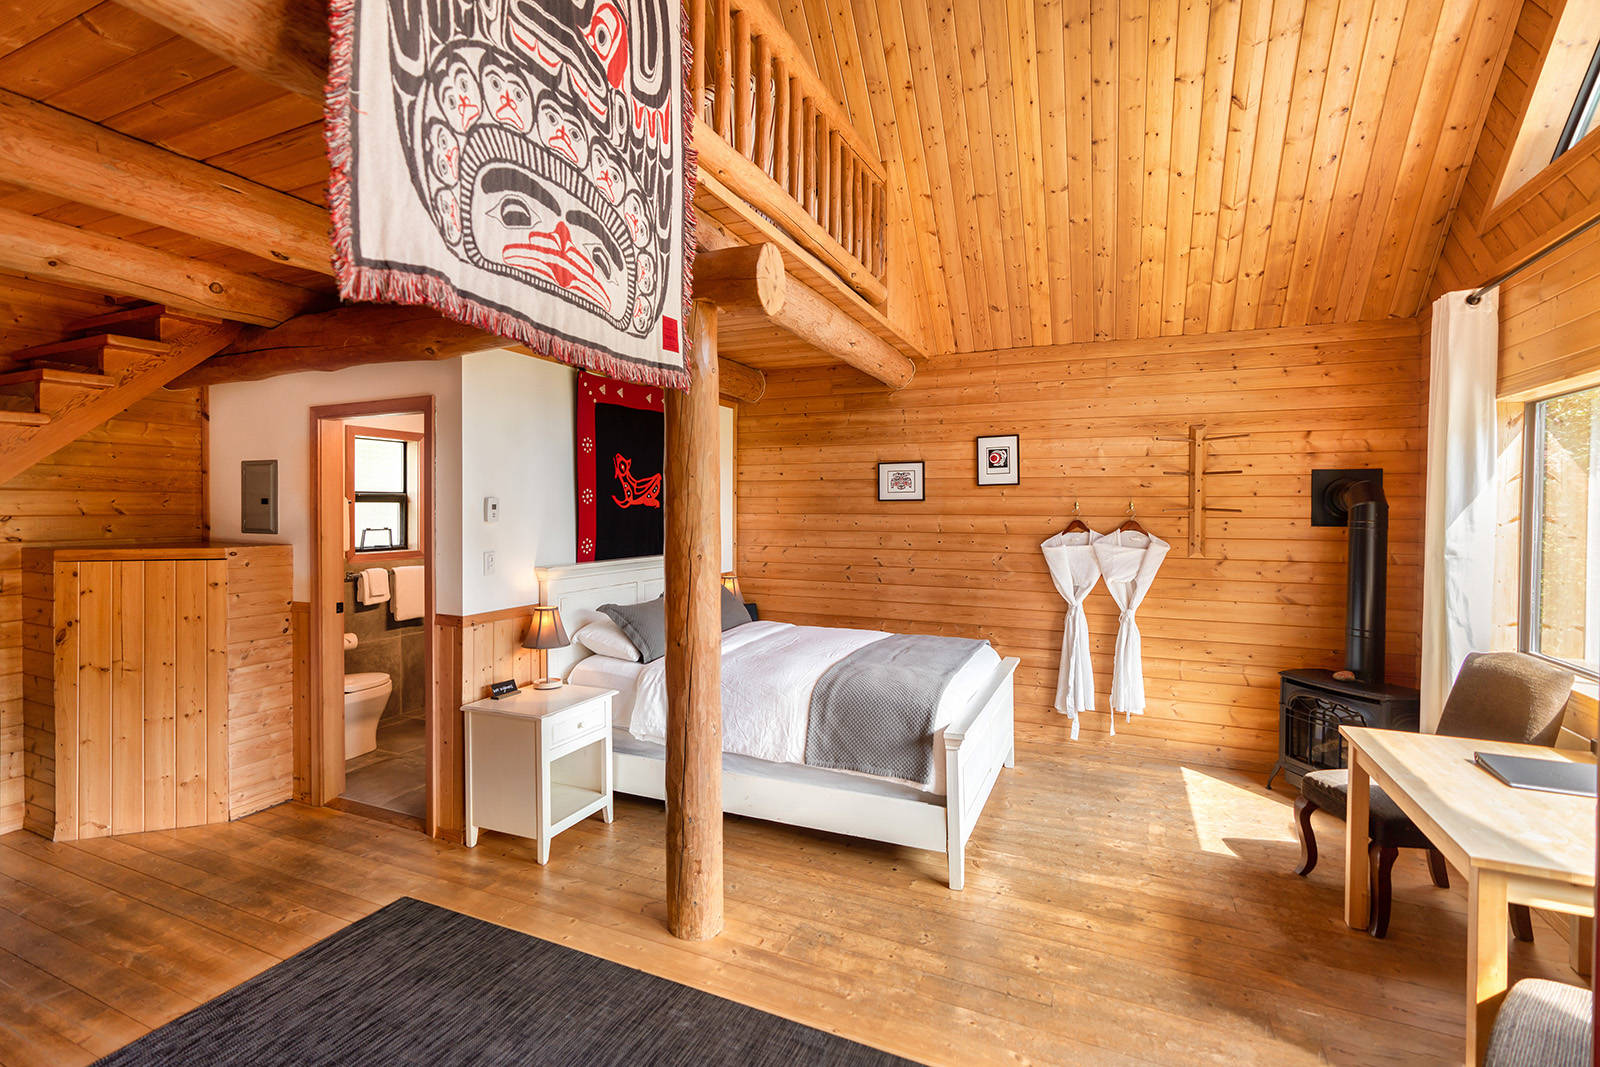 Bella Coola Heli Sports' Tweedsmuir Park Lodge. In addition to more than 13,150 square kilometres of pristine wilderness, guests can choose from five wilderness lodges in the company's portfolio. Photo courtesy of Bella Coola Heli Sports.